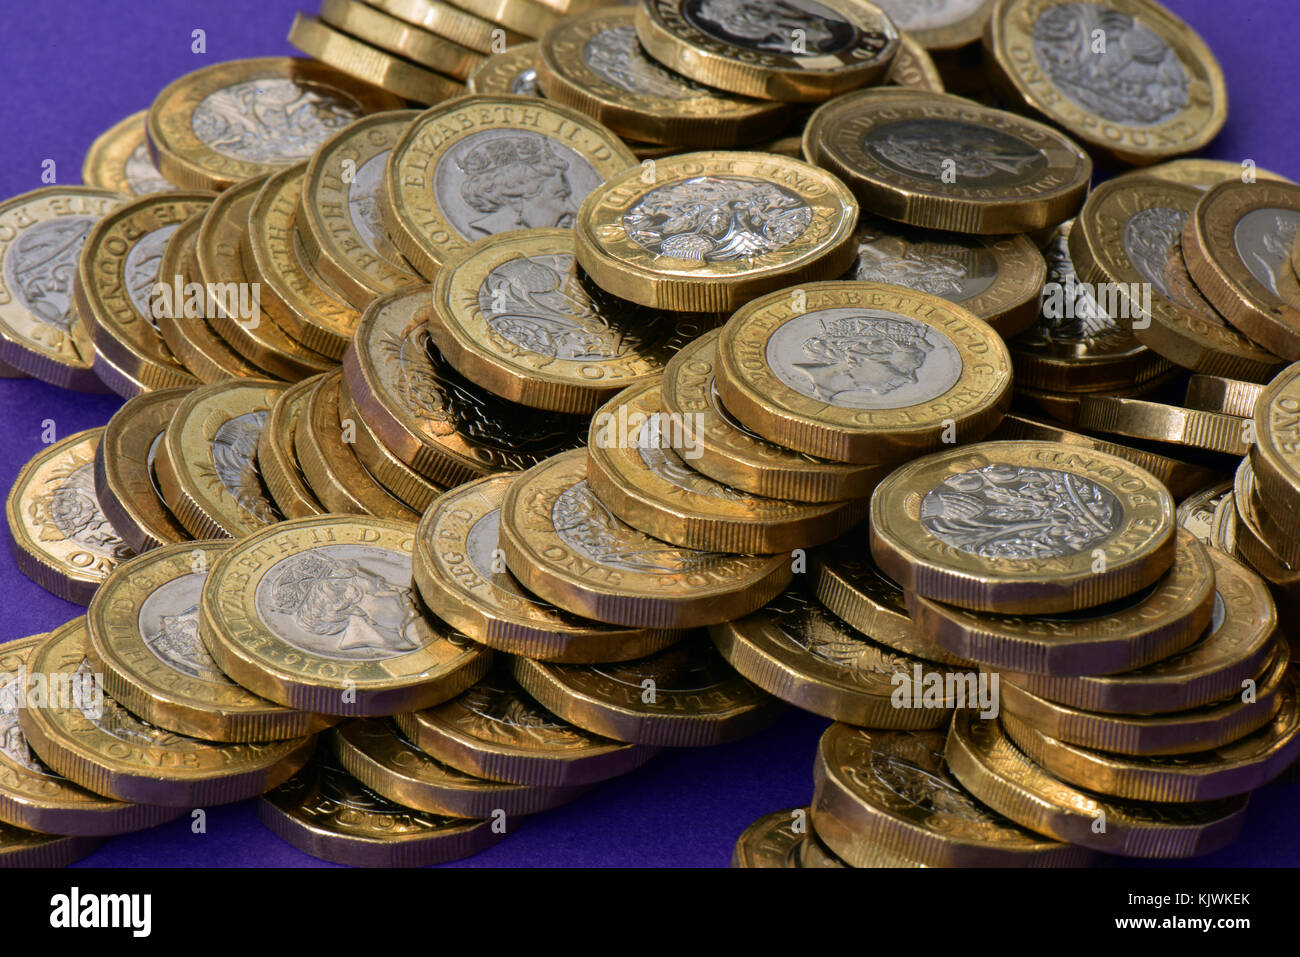 An untidy pile of lots of one pound coins on a purple or mauve background. Coins of the realm and currency new one - Stock Image